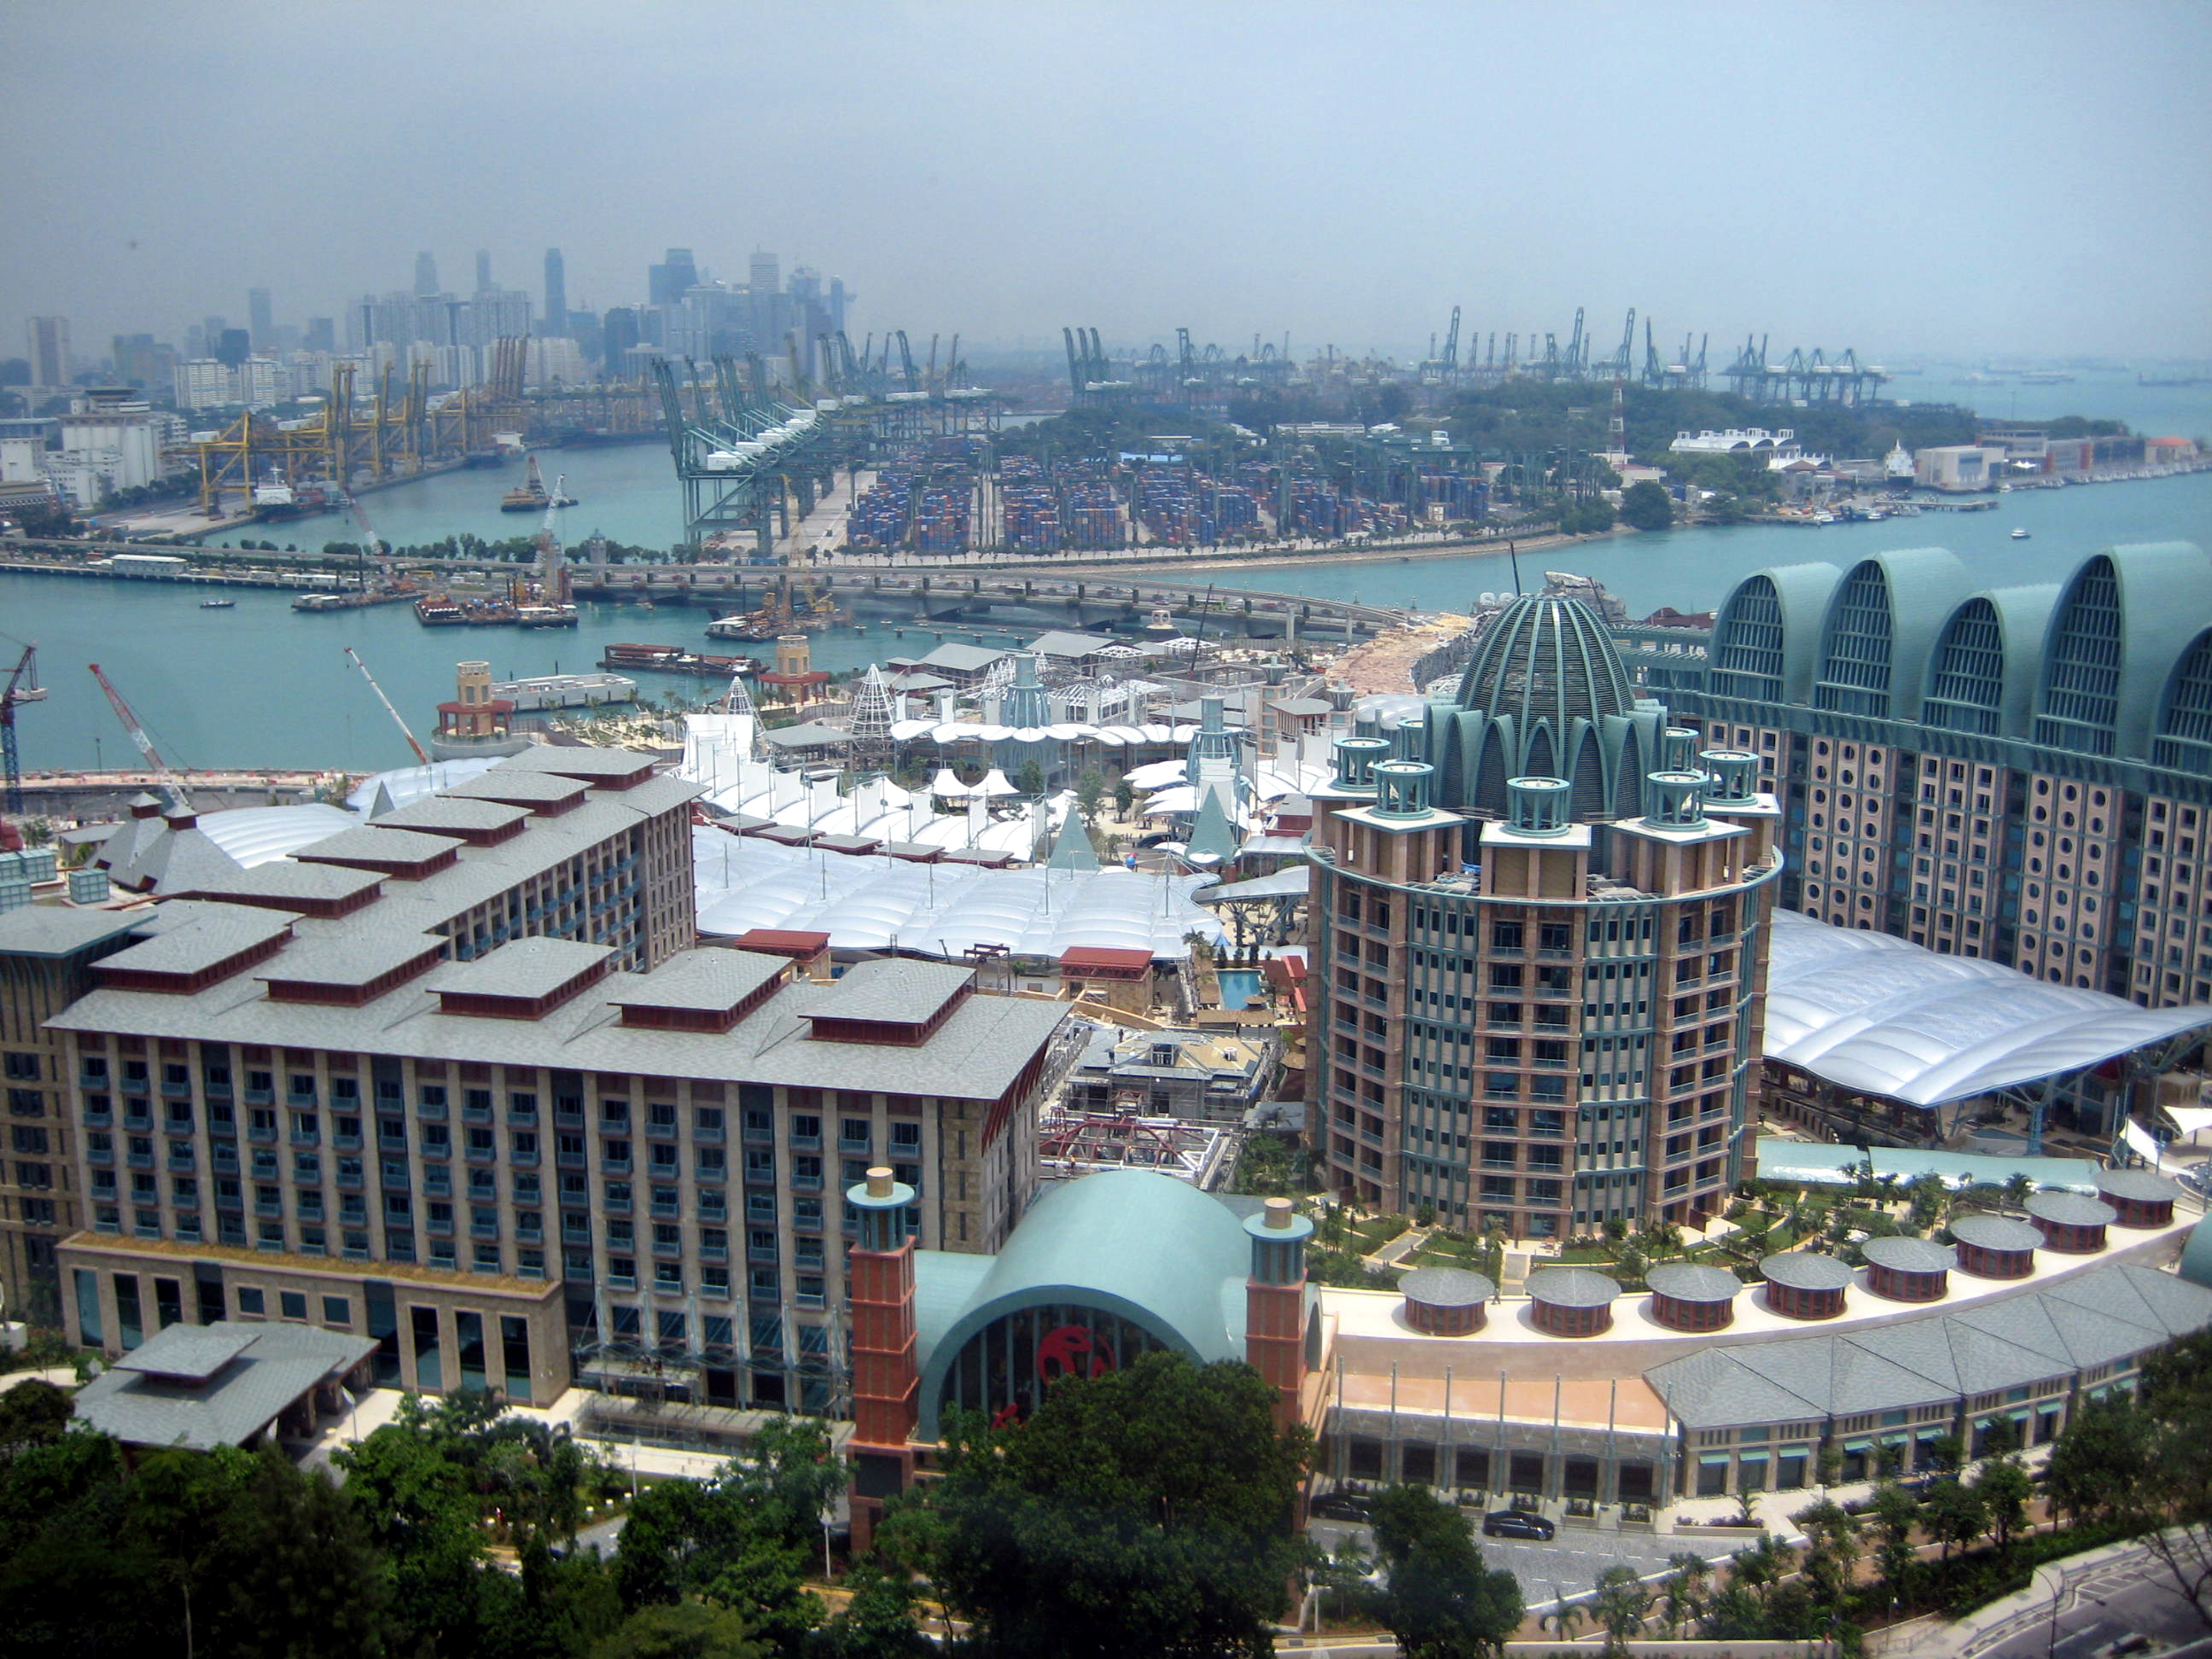 FileAerial view of Resorts World Sentosa Singapore